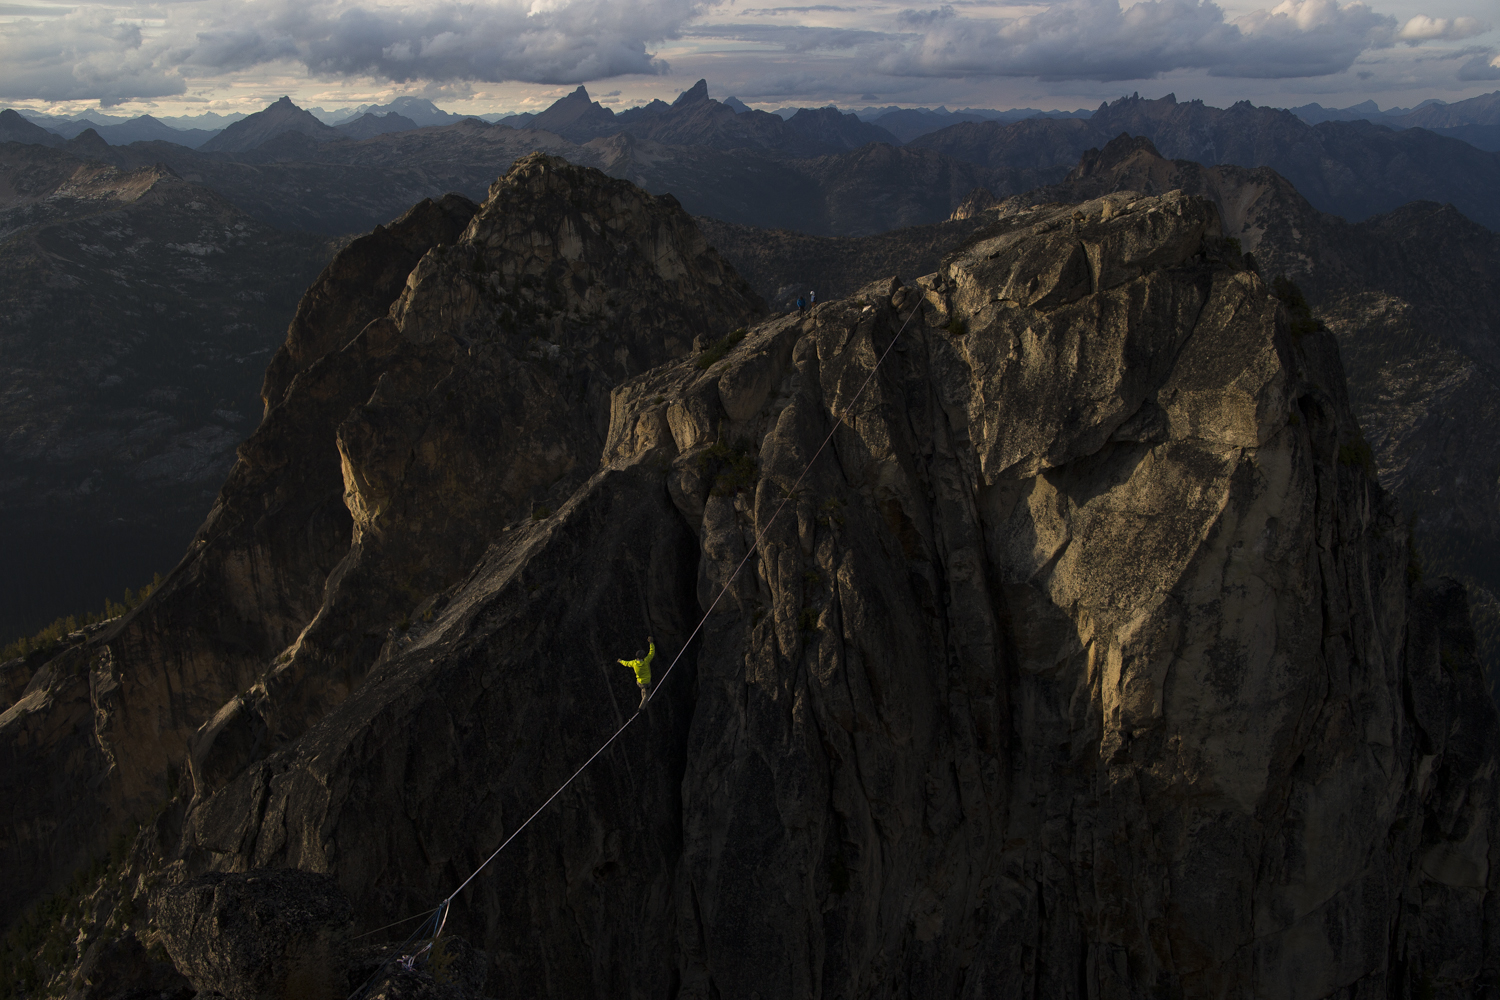 Ben Plotkin-Swing walks across a highline in the North Cascades. Plotkin-Swing says his companion Carl Marrs played a large role in getting the line rigged.  (Courtesy of Krystle Wright)